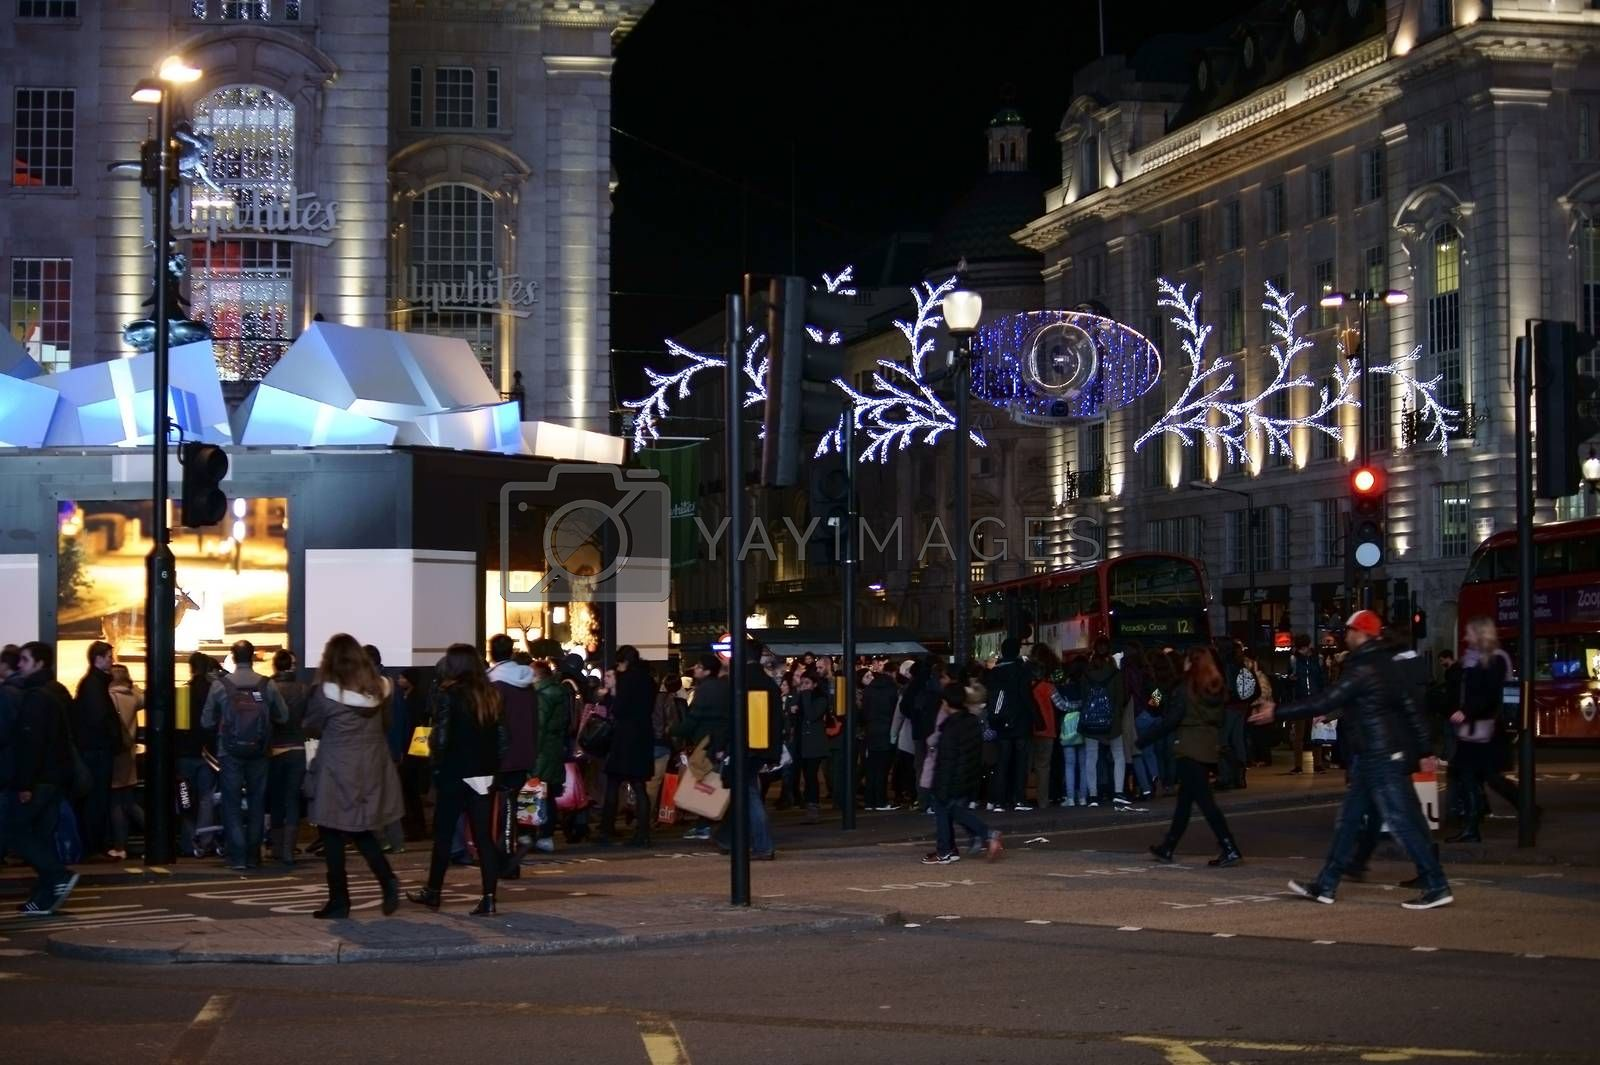 London, UK - November 29, 2014: A crowd of tourists and pedestrians are crossing a festively decorated intersection of the Piccadilly Circus on November 29, 2014 in London.